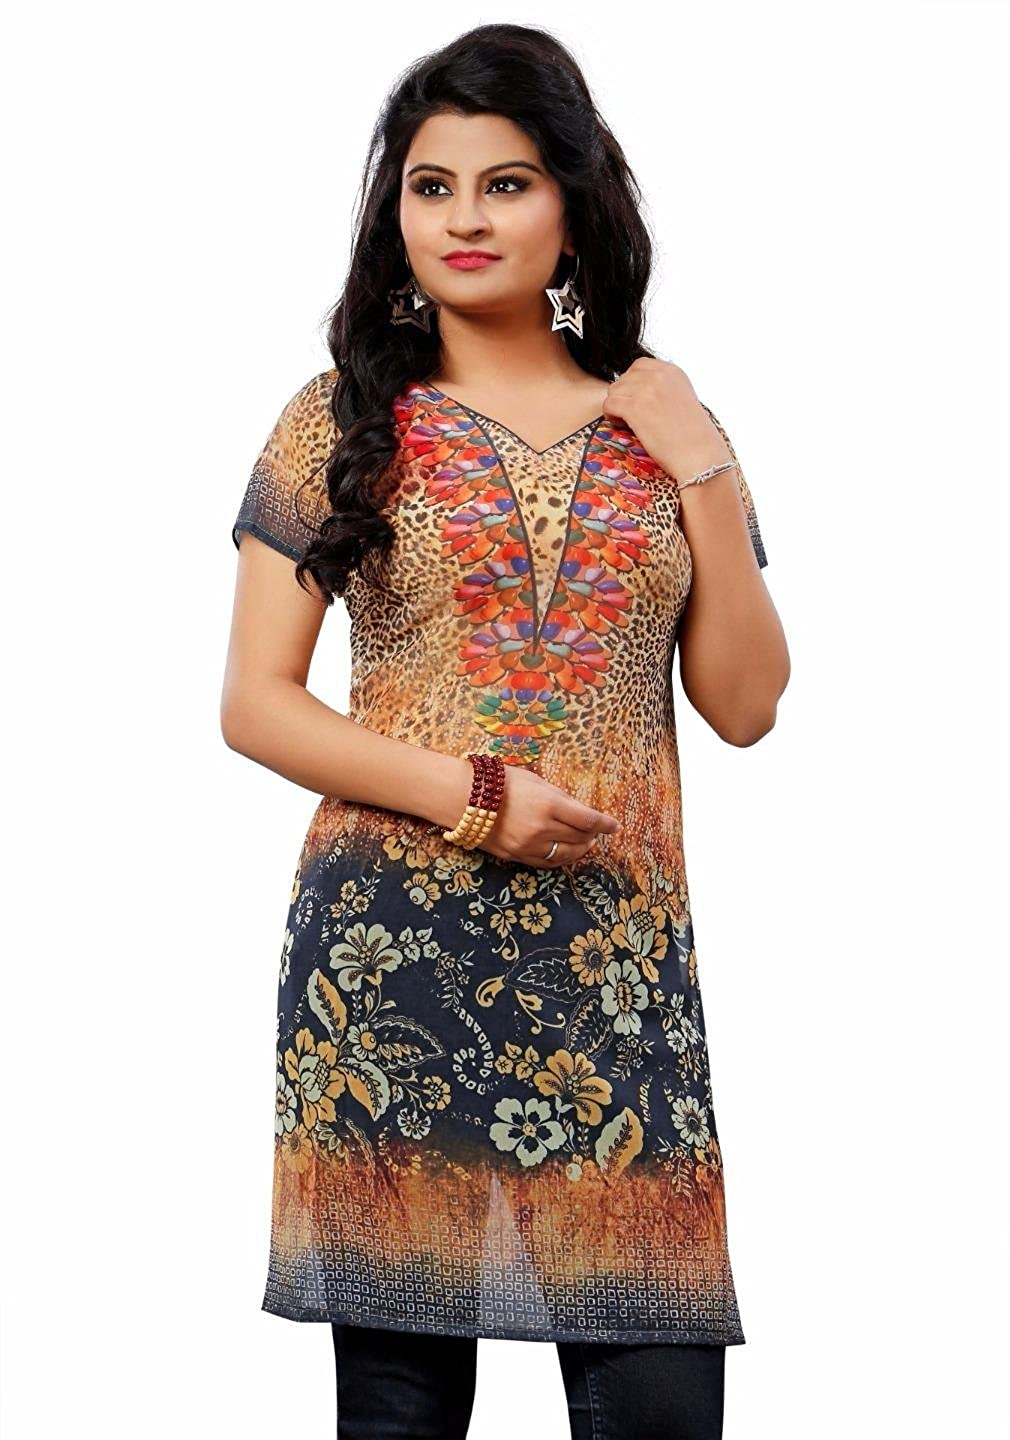 724f390abe9e2 60gram Georgette (Thin Material Without Liner) fabric with Digital Print  Long Kurti tops Tunics Blouse with Slit on the sides.. see thru. Printed  Only.